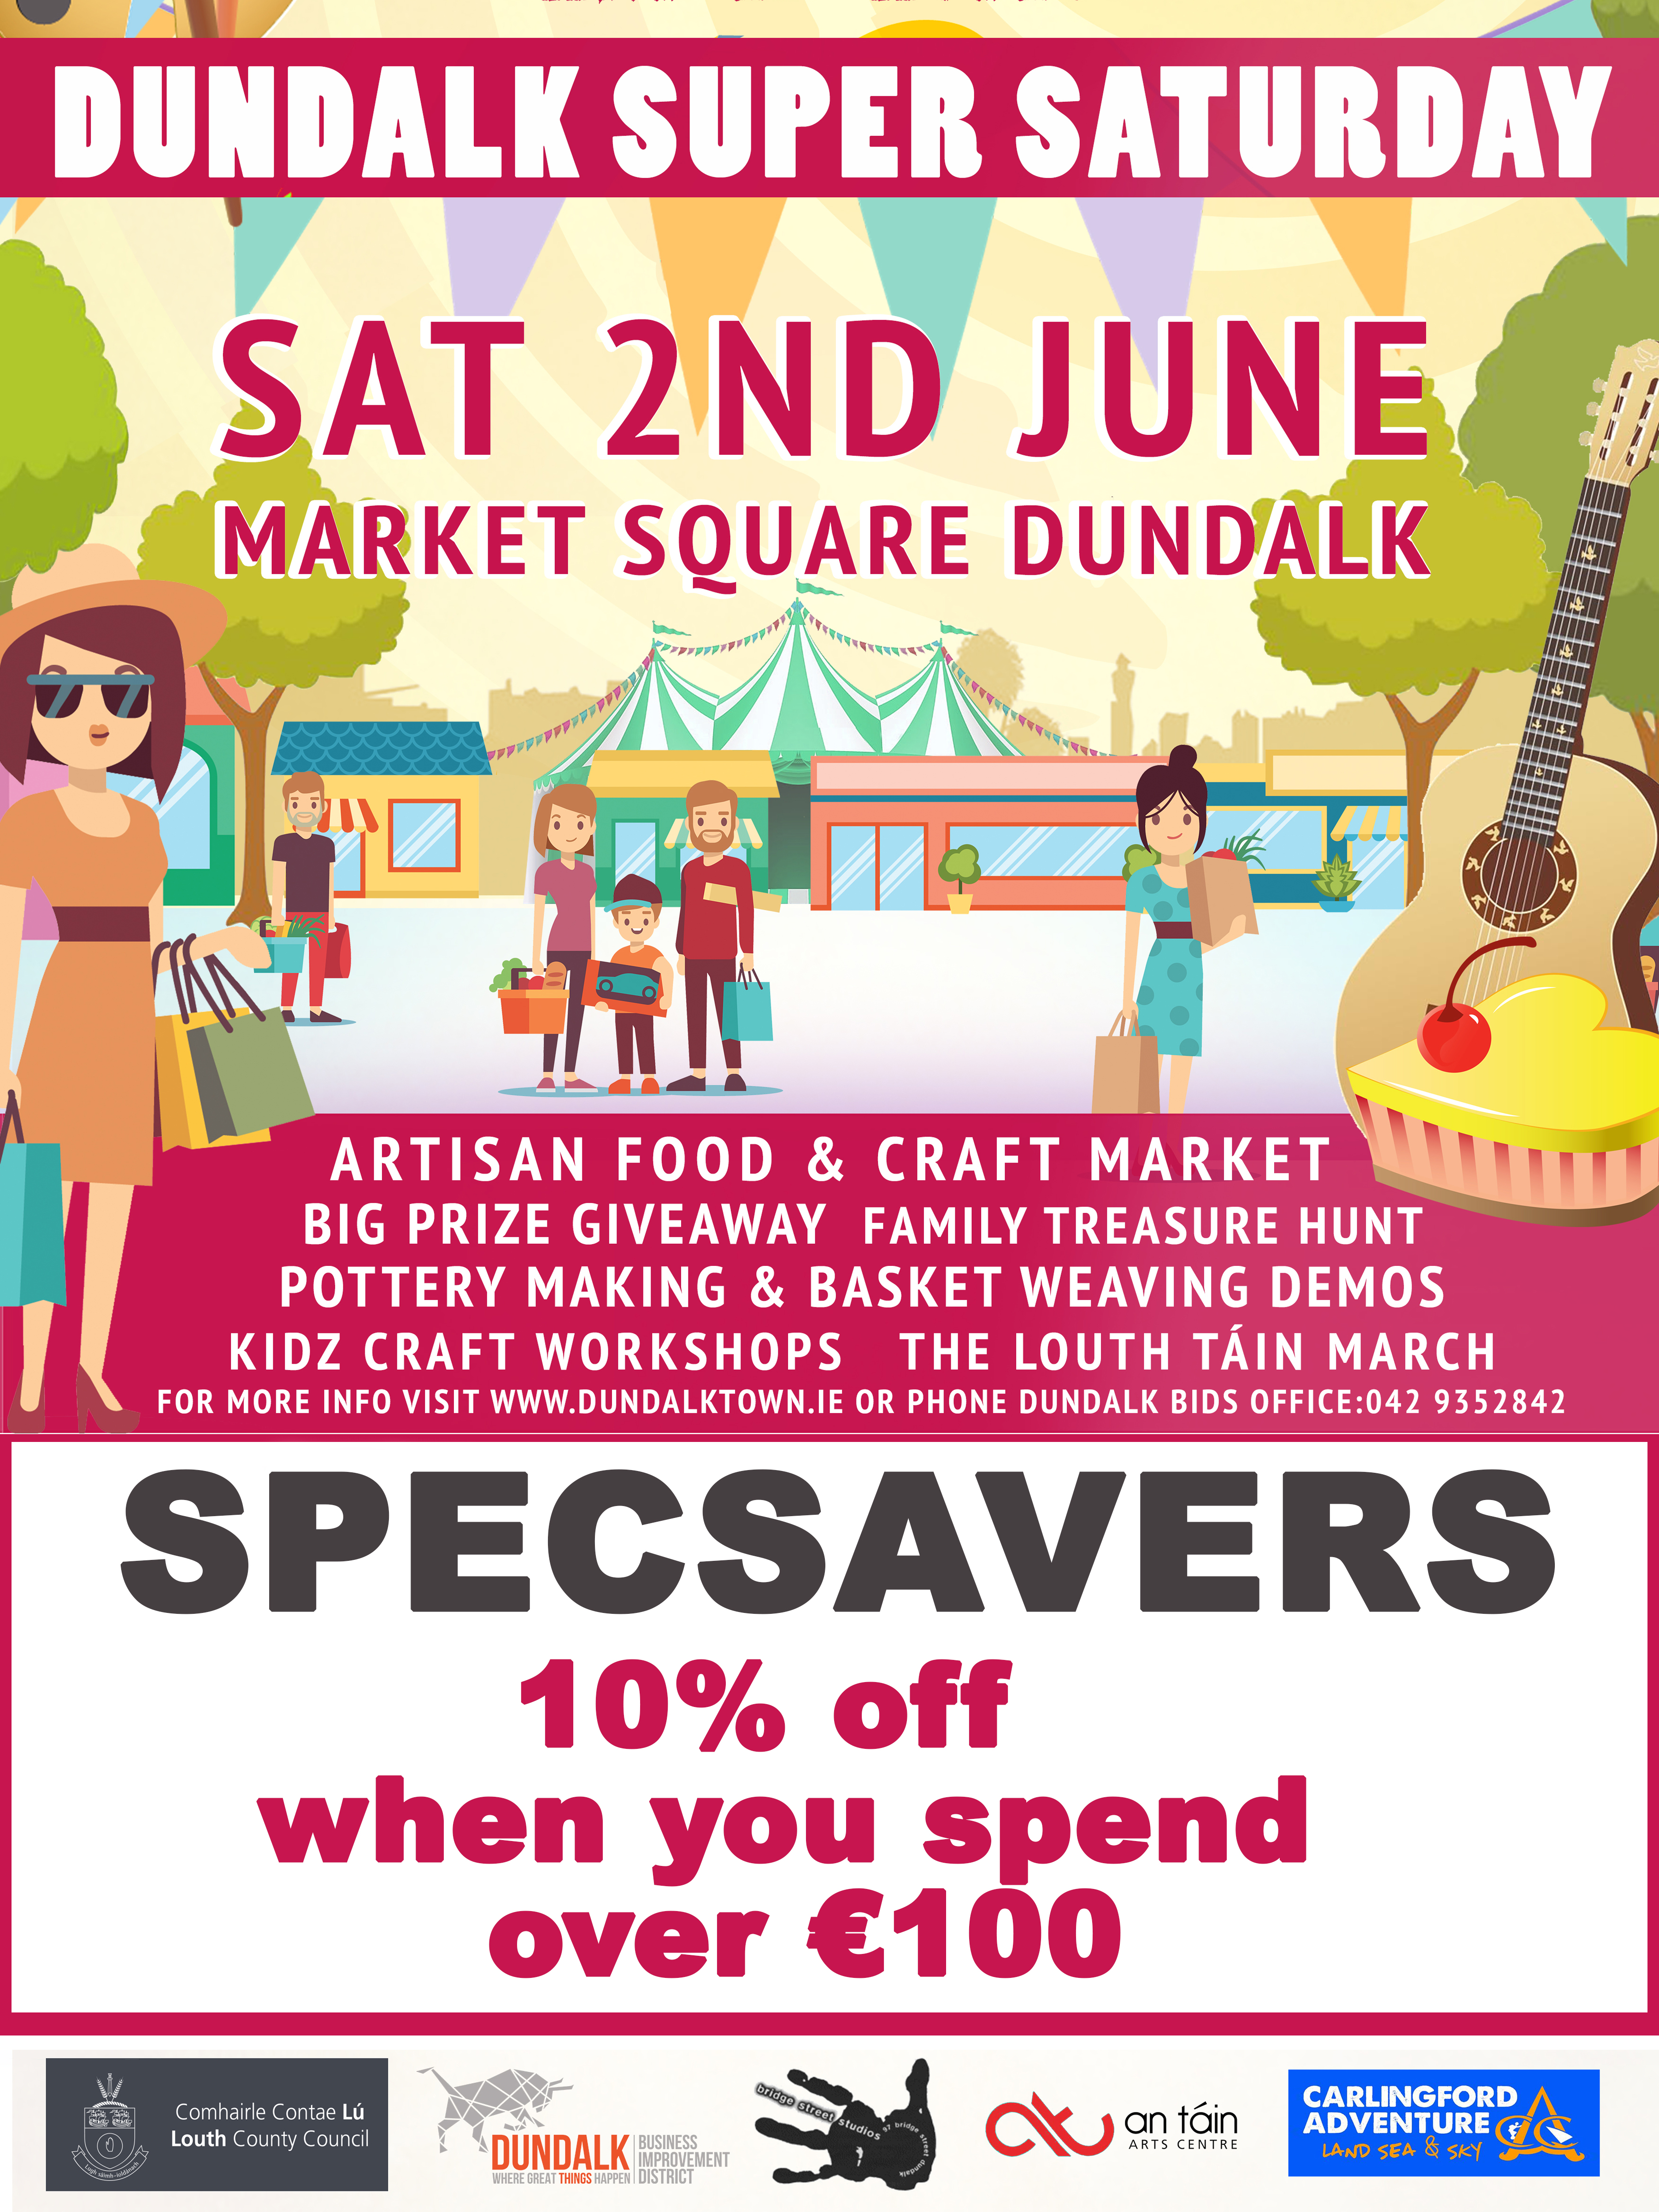 Specsavers Dundalk Super Saturday 2018